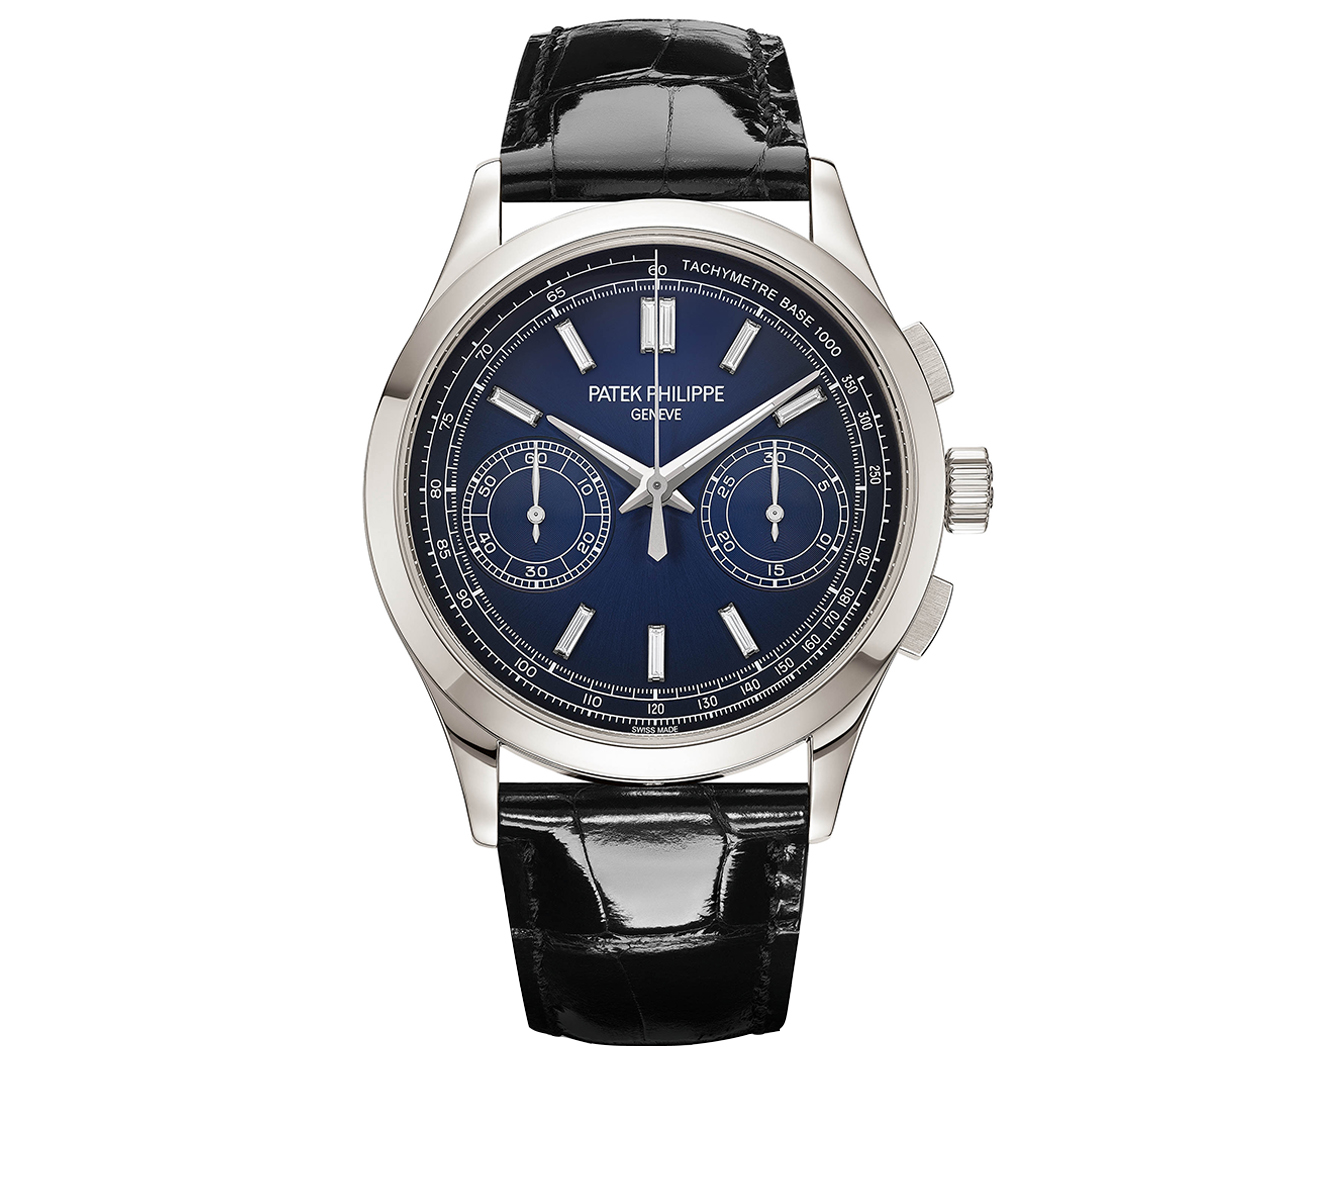 Часы Chronograph PATEK PHILIPPE Complications 5170 P-001 - фото 1 – Mercury